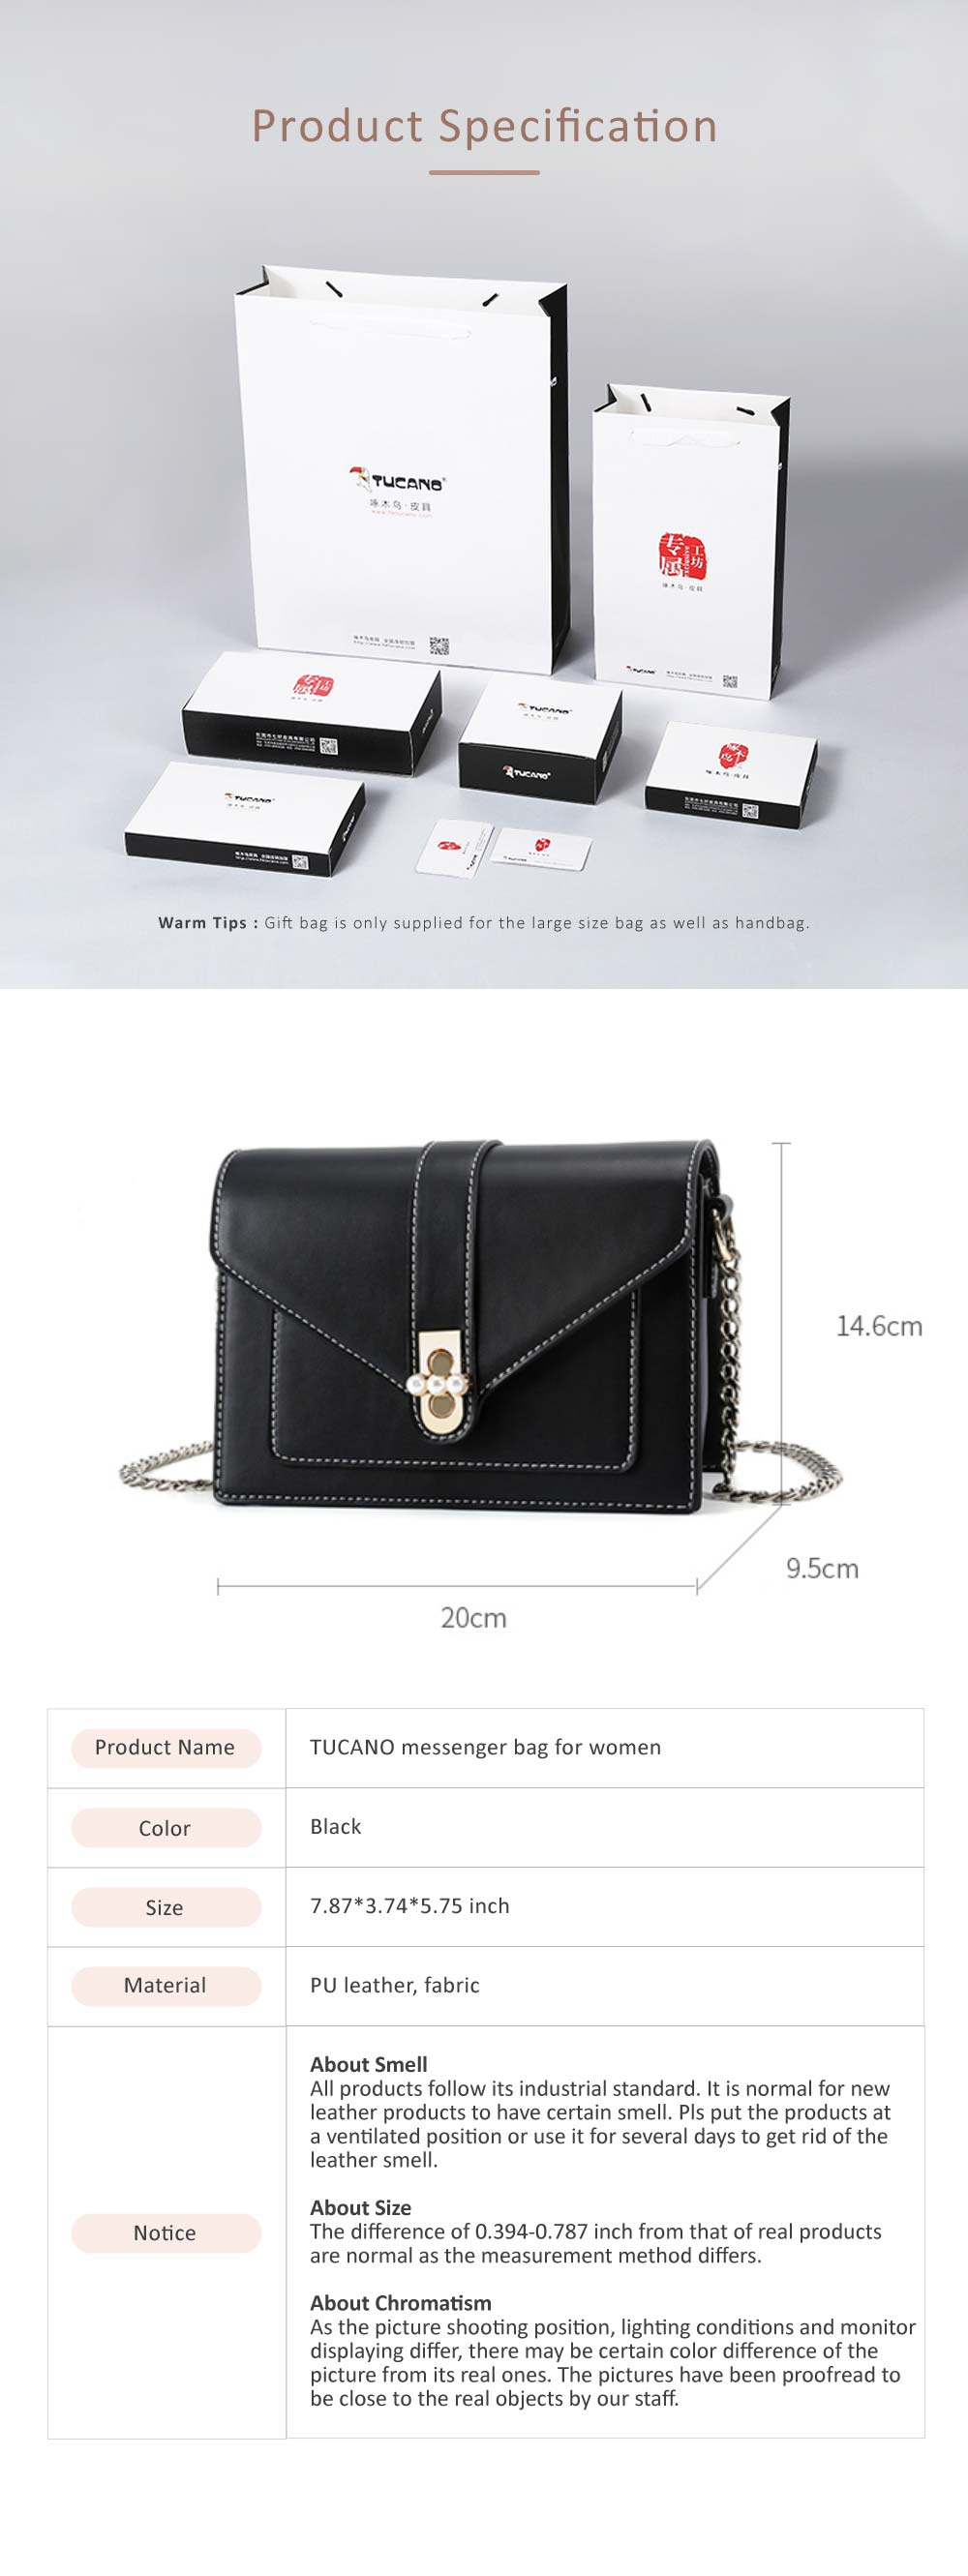 TUCANO Messenger Bag for Women Messenger Bag with Chain Strap Single-shoulder Bag 2019 7